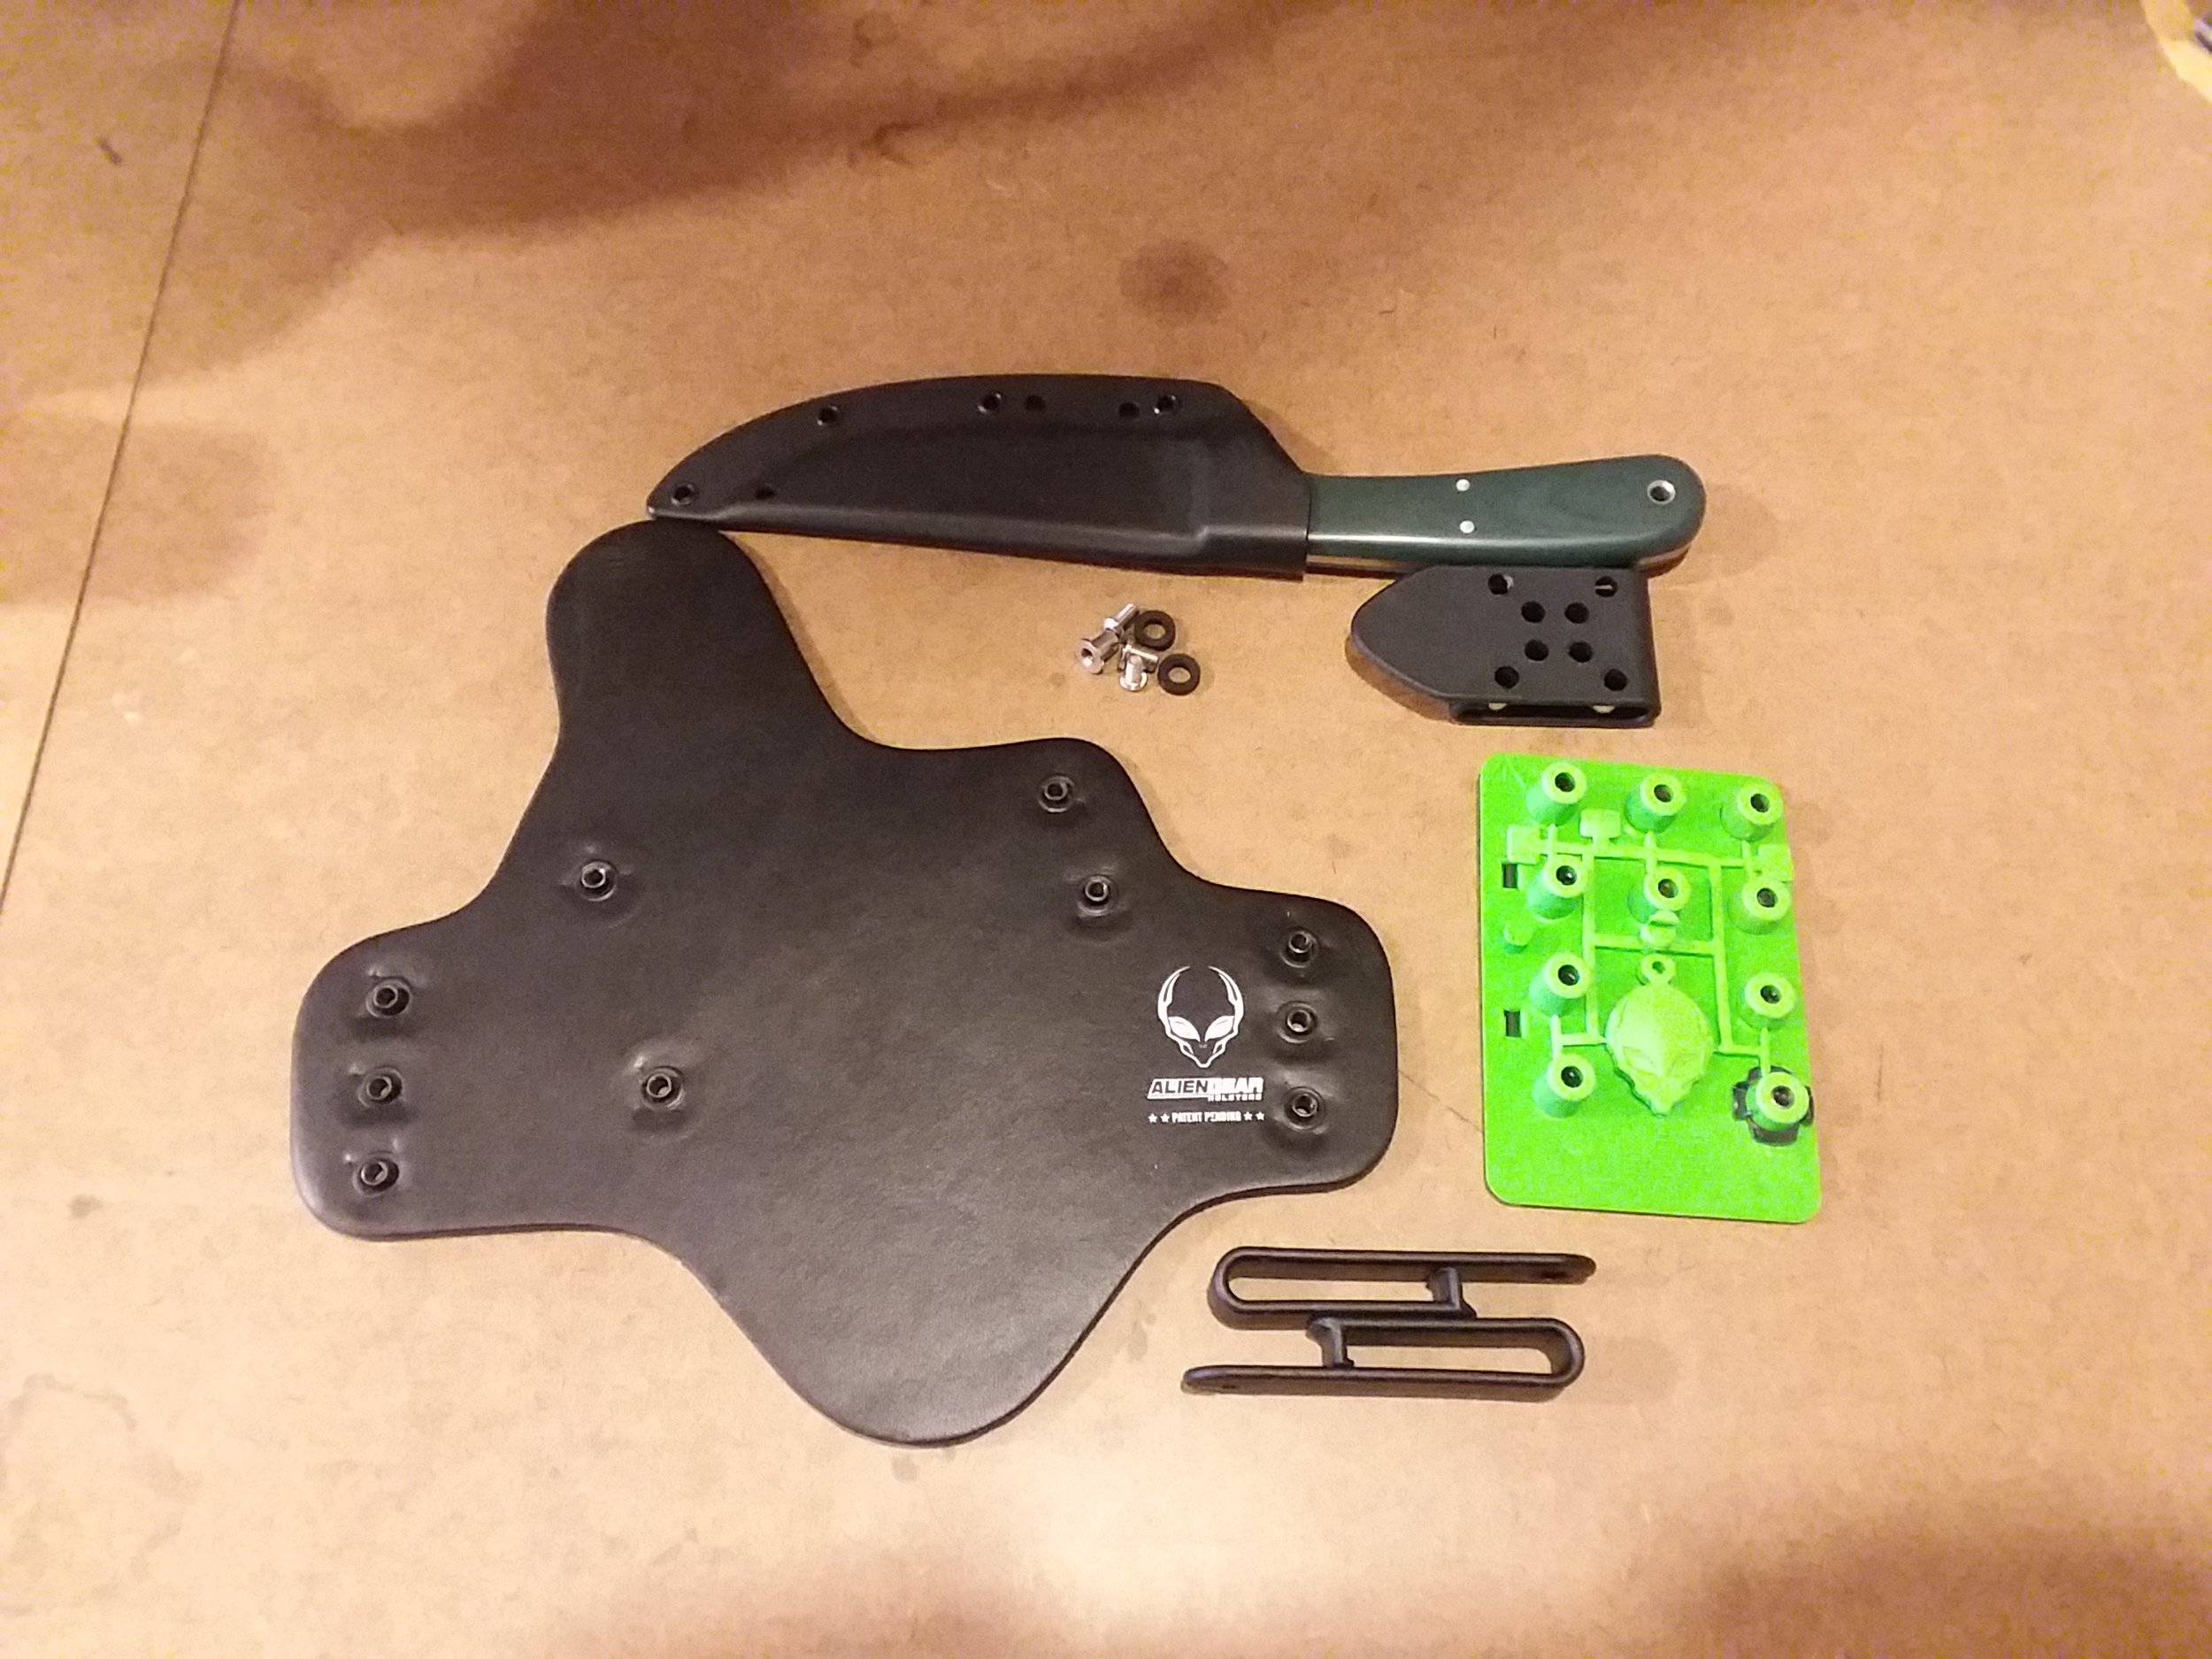 All the hardware needed to mount a kydex sheath on an Aliengear backer.